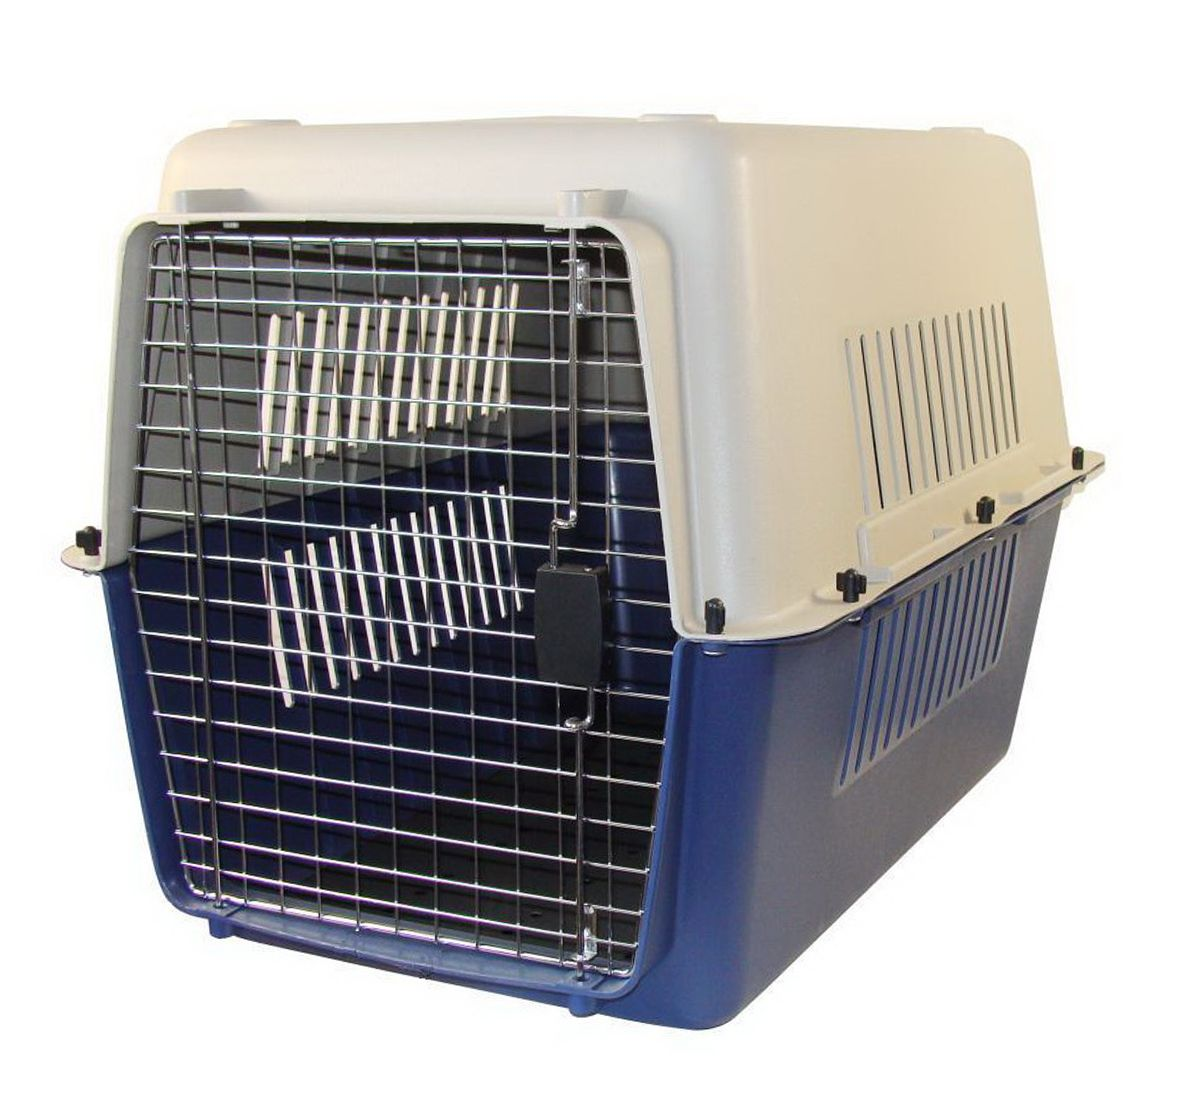 Large Dog Travel Crate (LxWxH 32x22x22 inch) Large dog